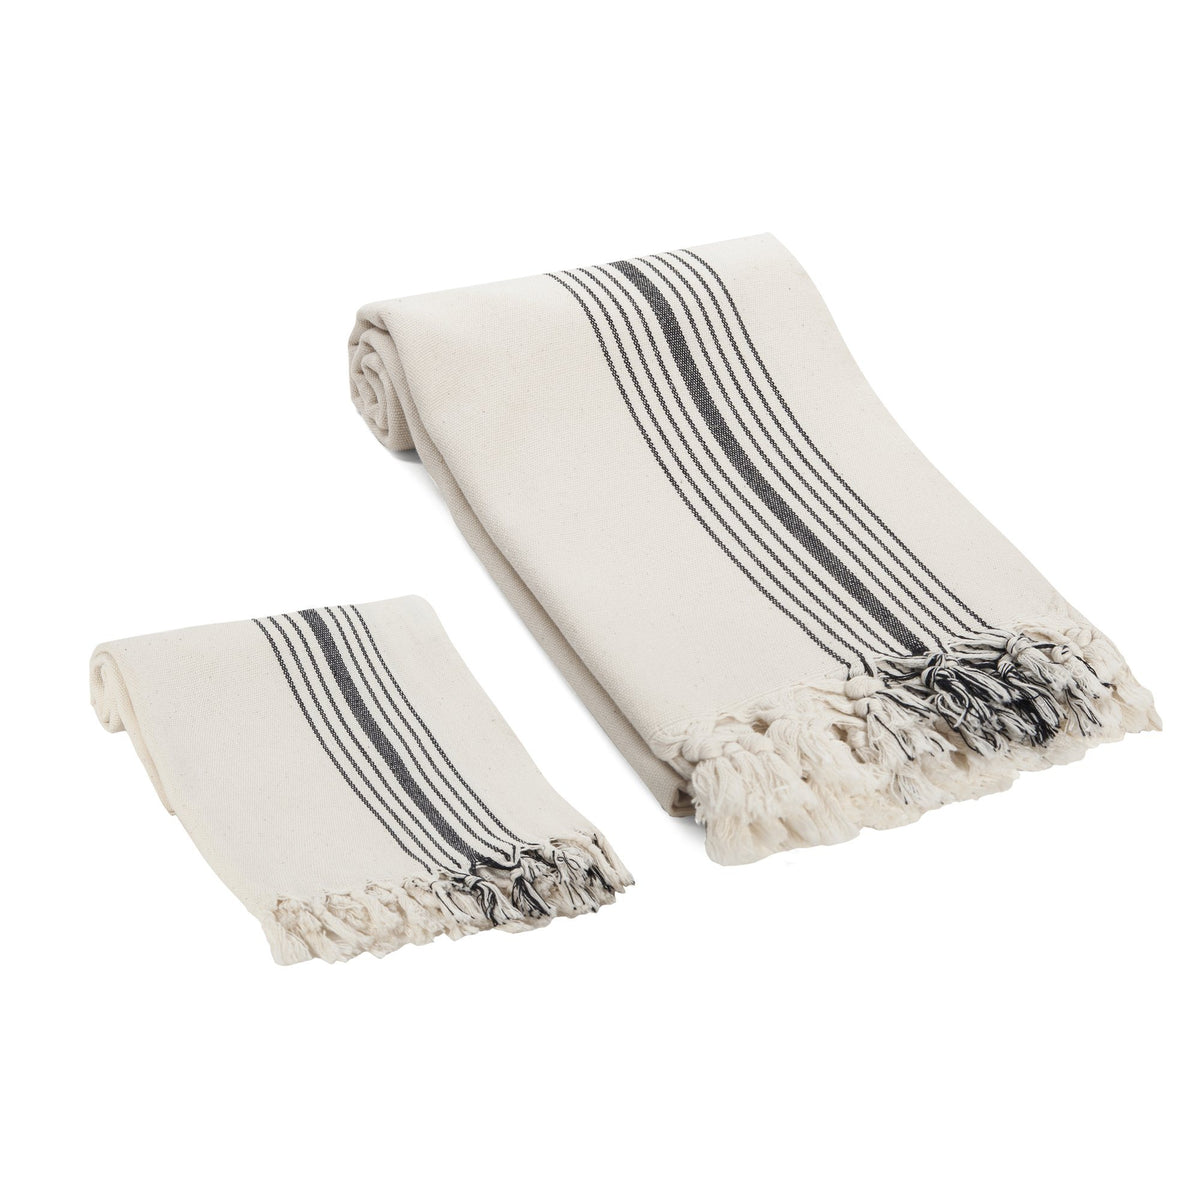 Allez Turkish Towel Set